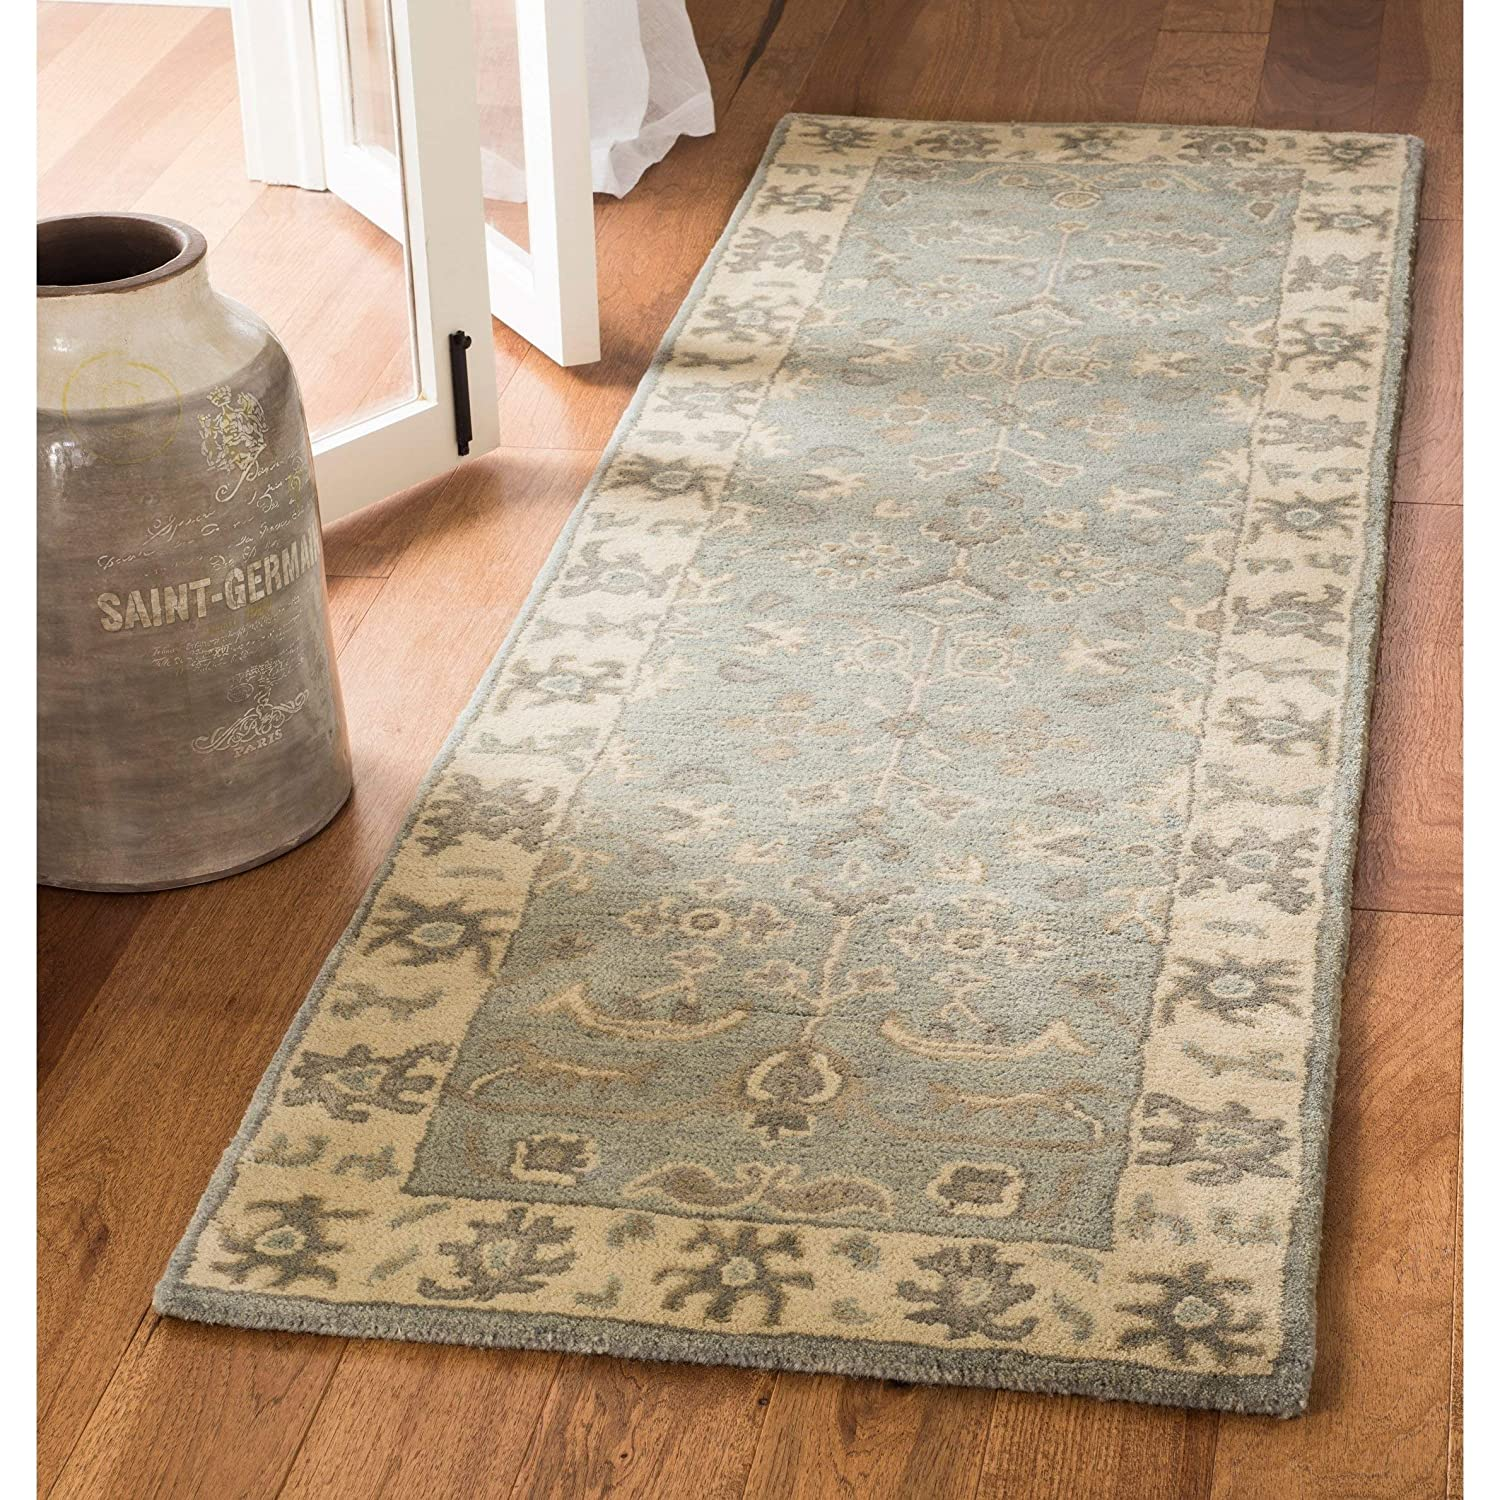 23 x 7 Safavieh Royalty Collection ROY721A Slate and Cream Traditional Oriental Wool Runner